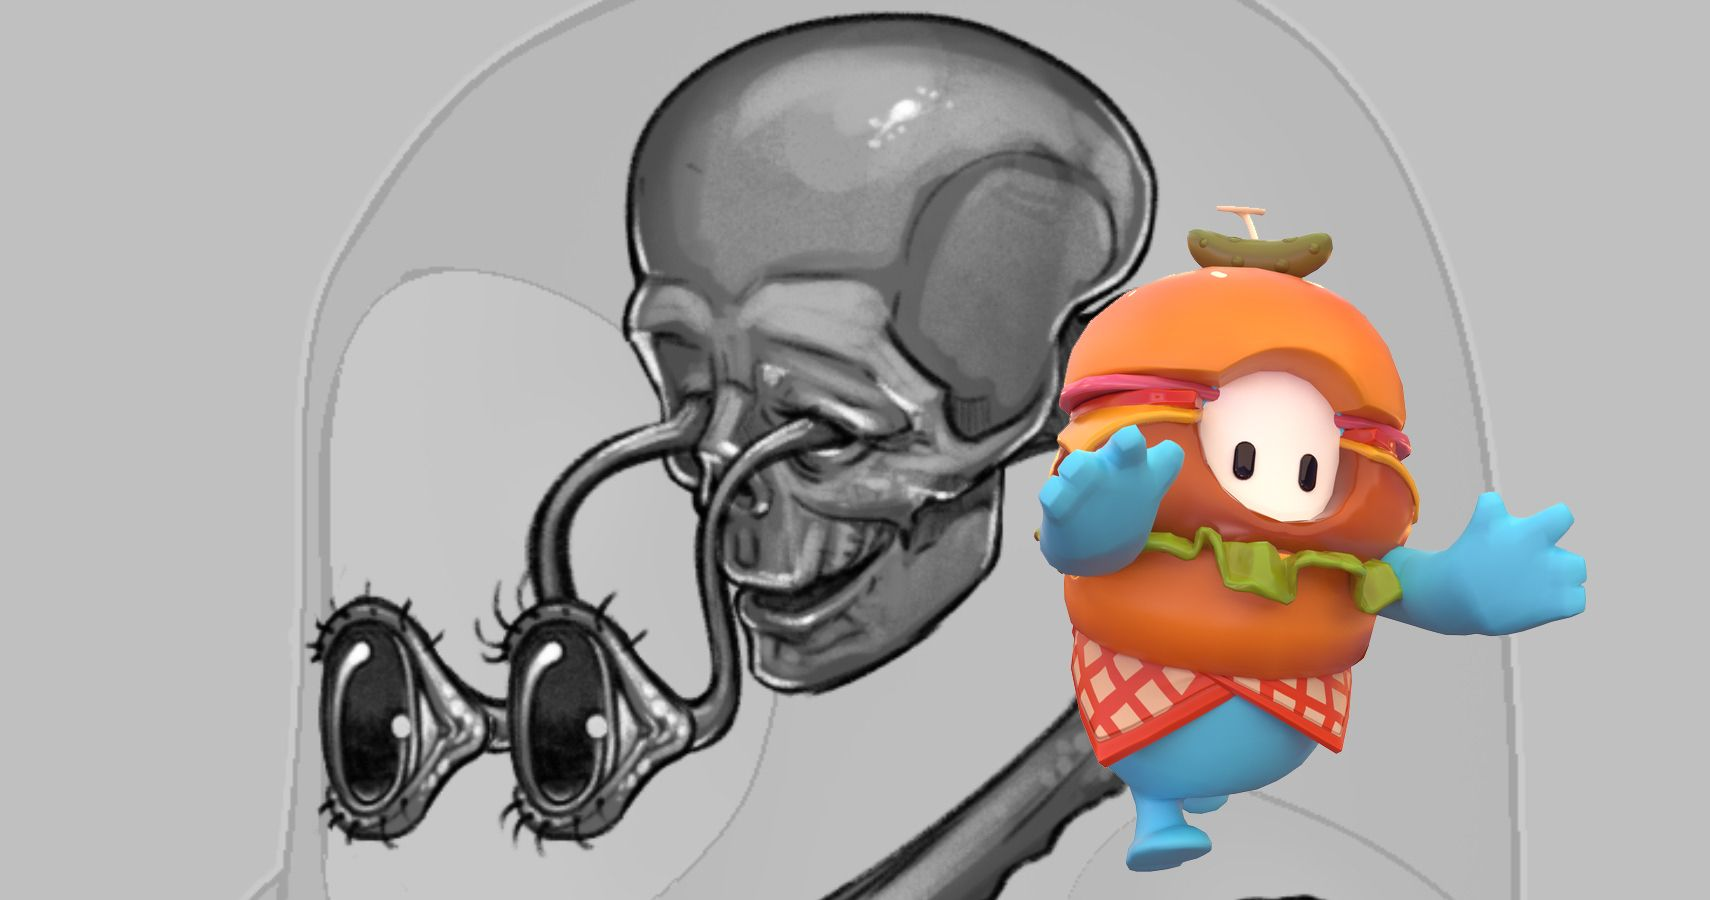 Fall Guys' Terrifying Anatomy Detailed In Official Concept Art